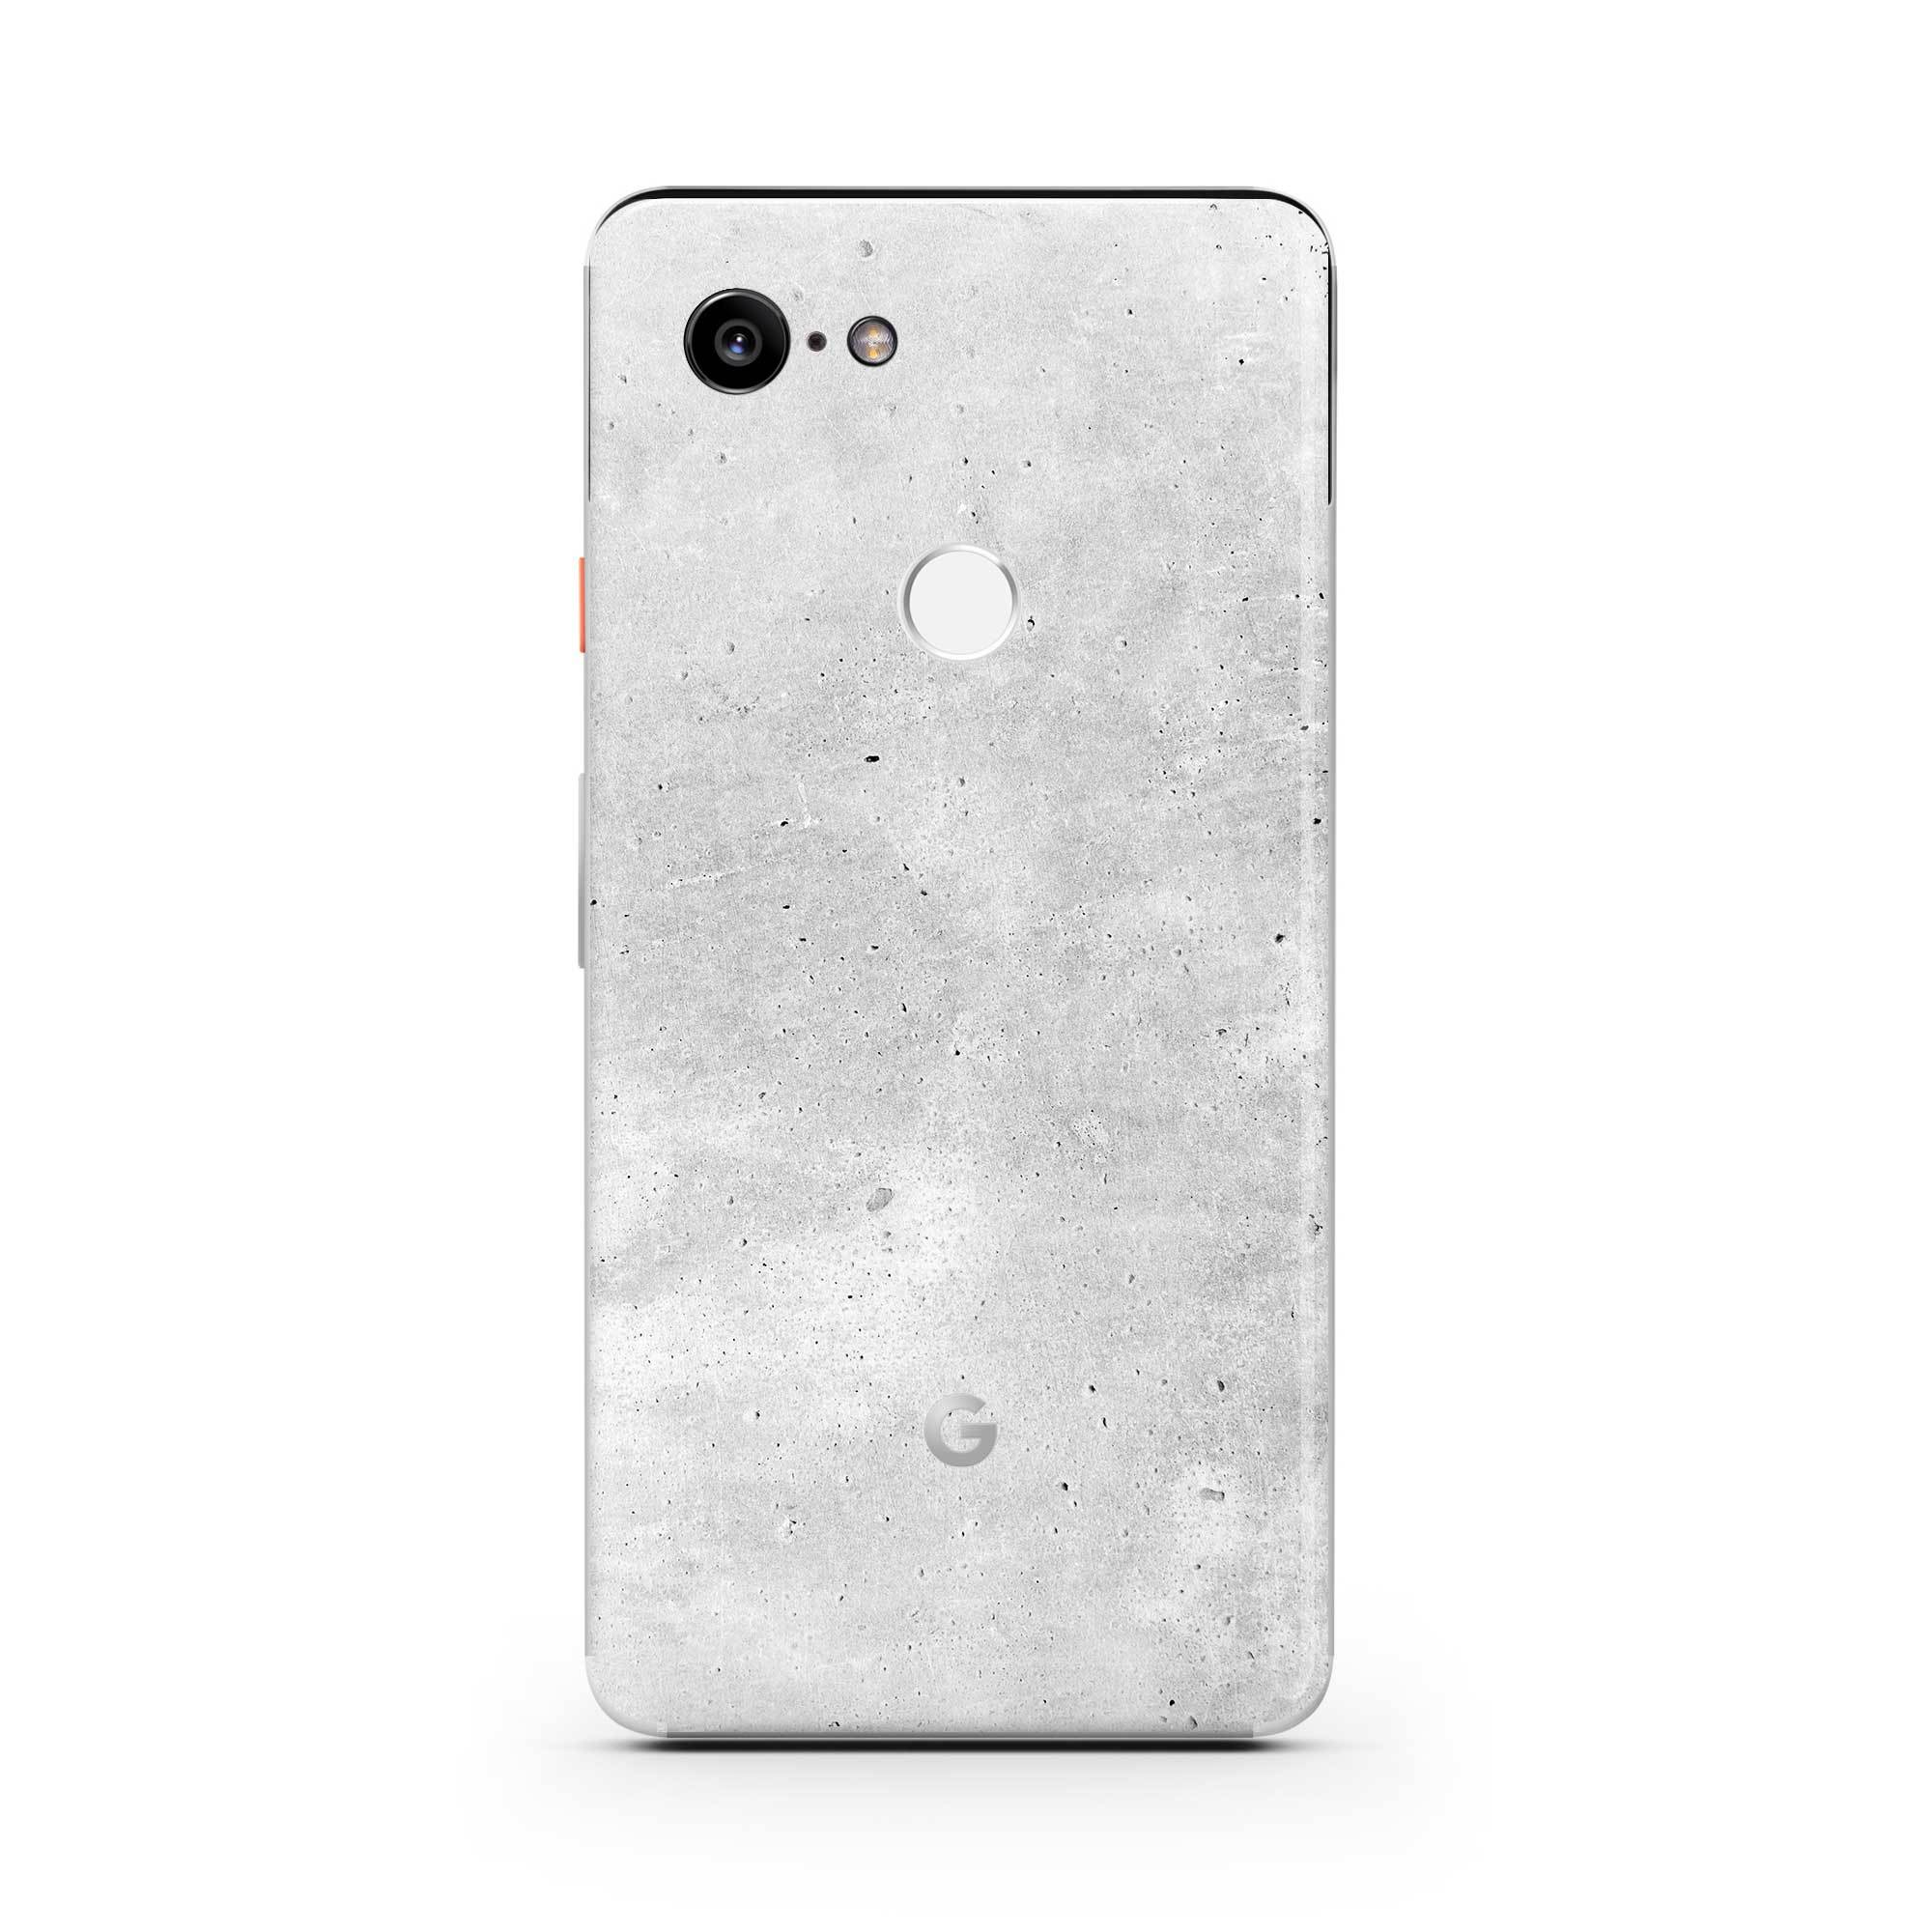 Concrete Pixel 3 XL Skin + Case